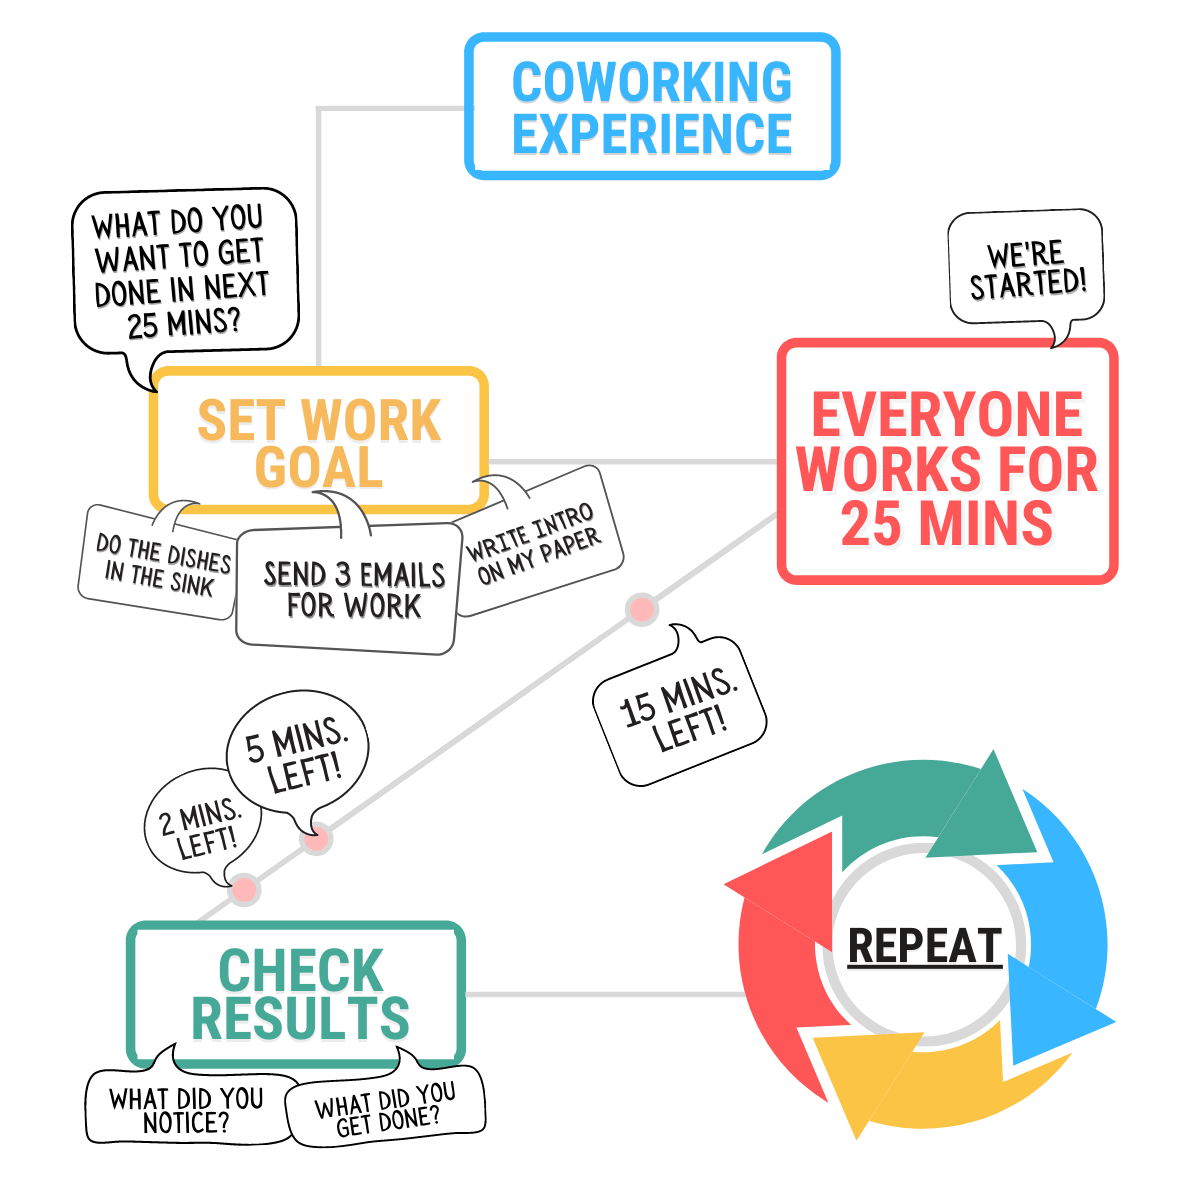 ADHD COWORKING GRAPHIC